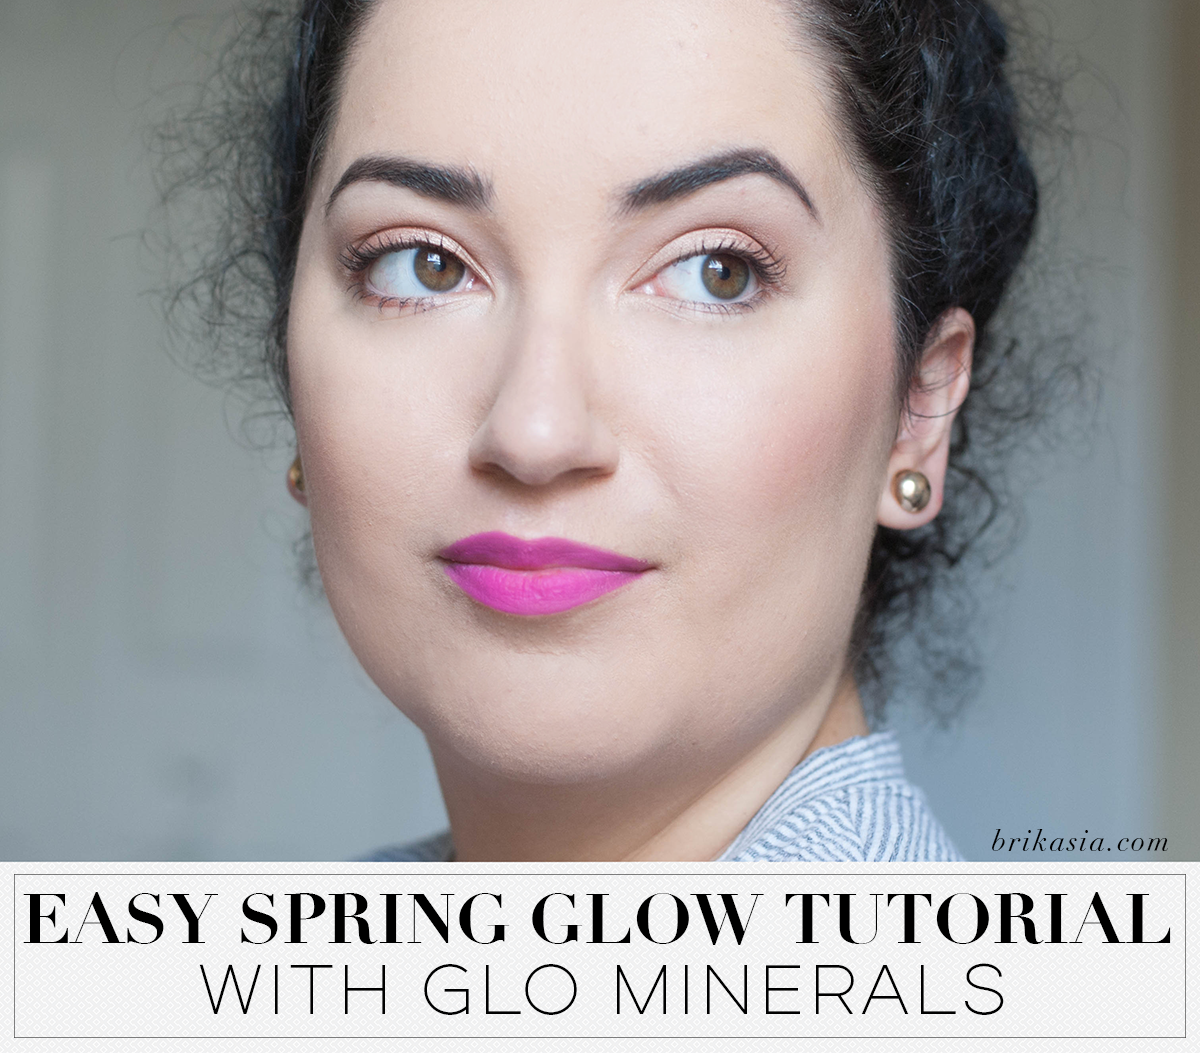 Glo Minerals Spring Makeup Tutorial, glo minerals, easy spring makeup tutorial, glowy skin makeup tutorial, makeup tutorial for beginners